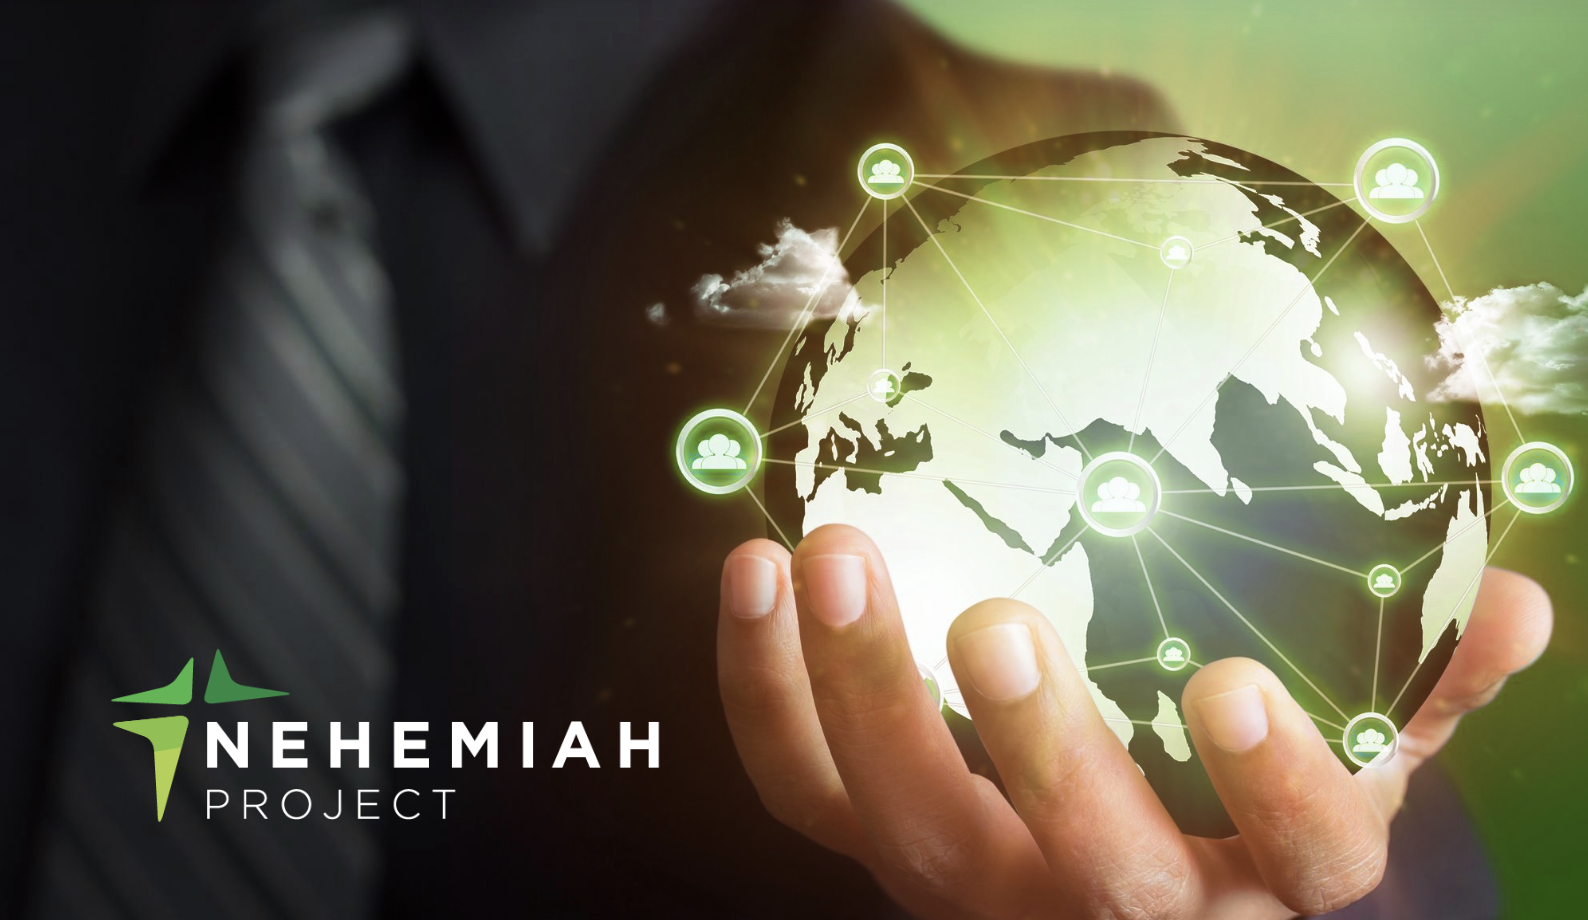 Nehemiah Partners with Churches to Create Jobs